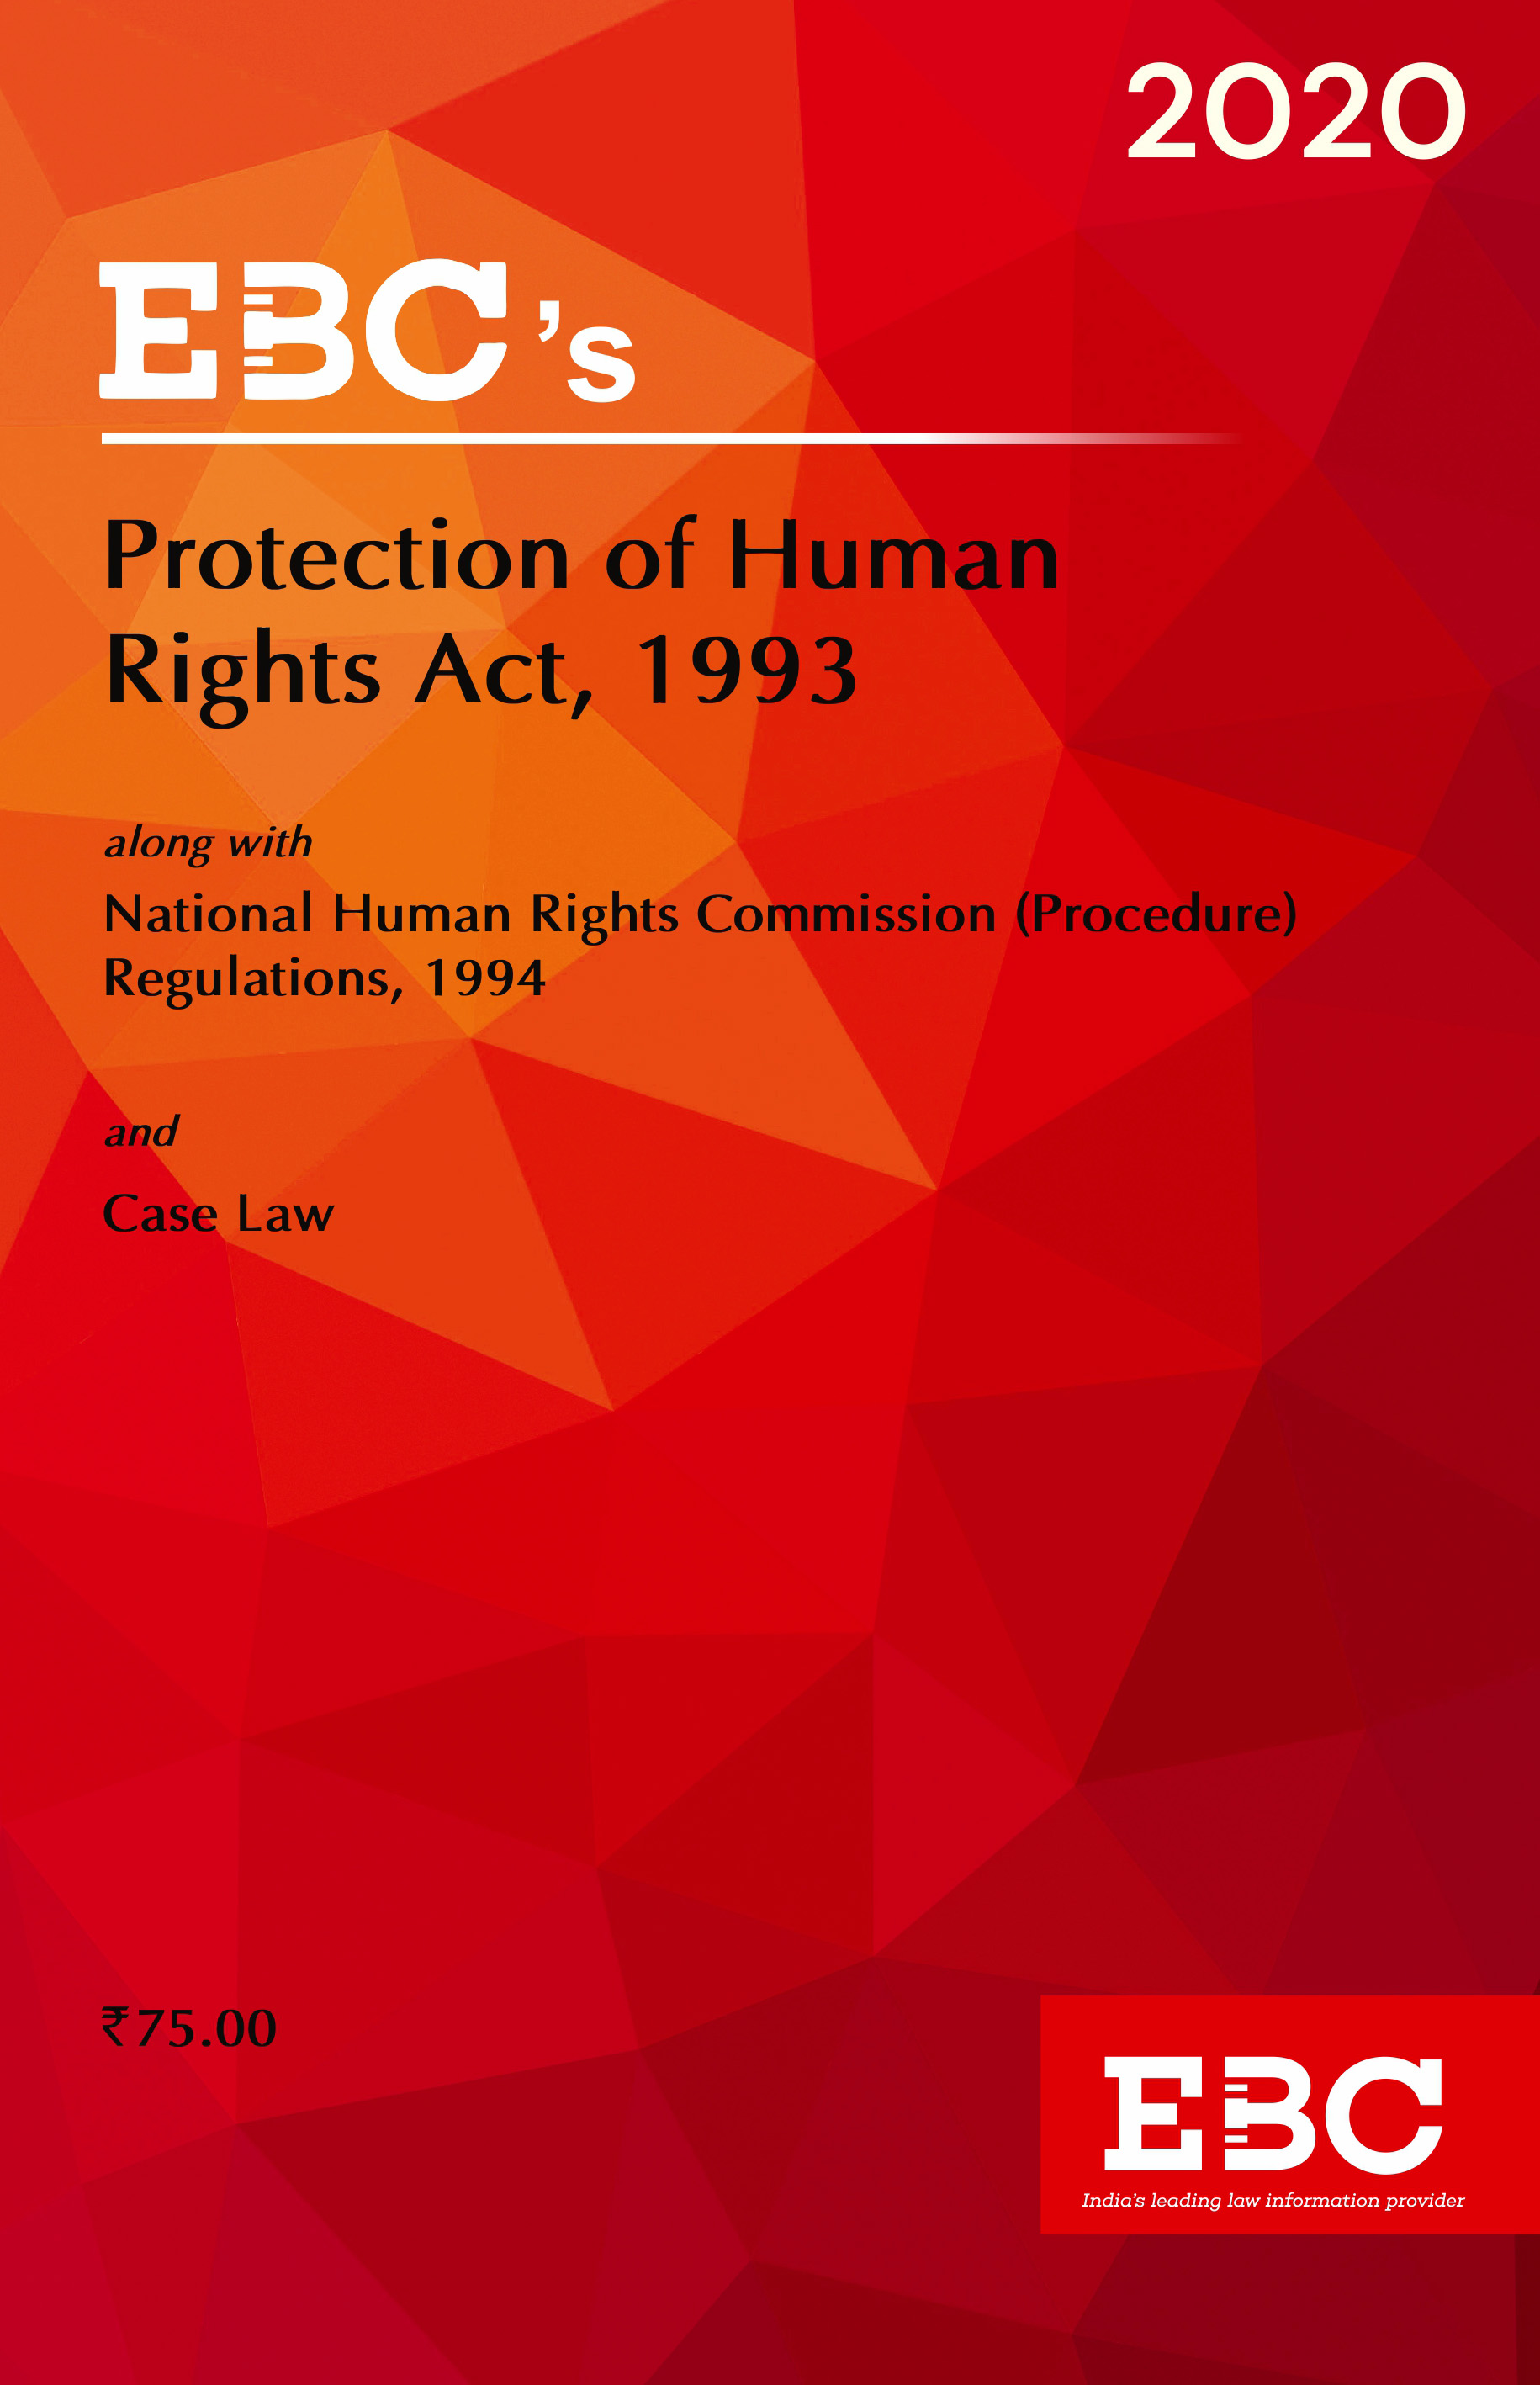 Protection of Human Rights Act, 1993